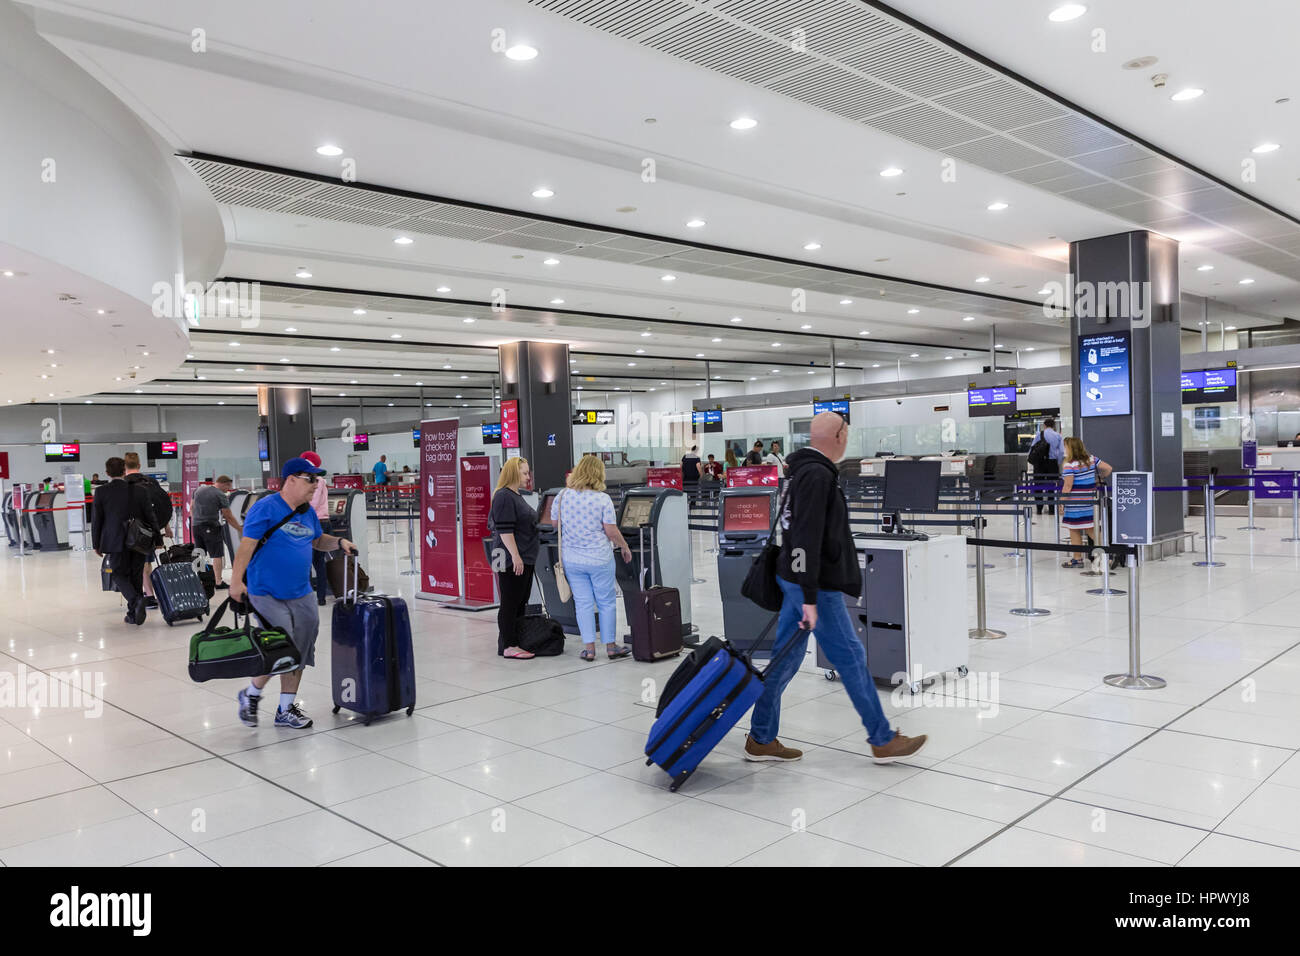 Passengers in departure hall at airport terminal - Stock Image